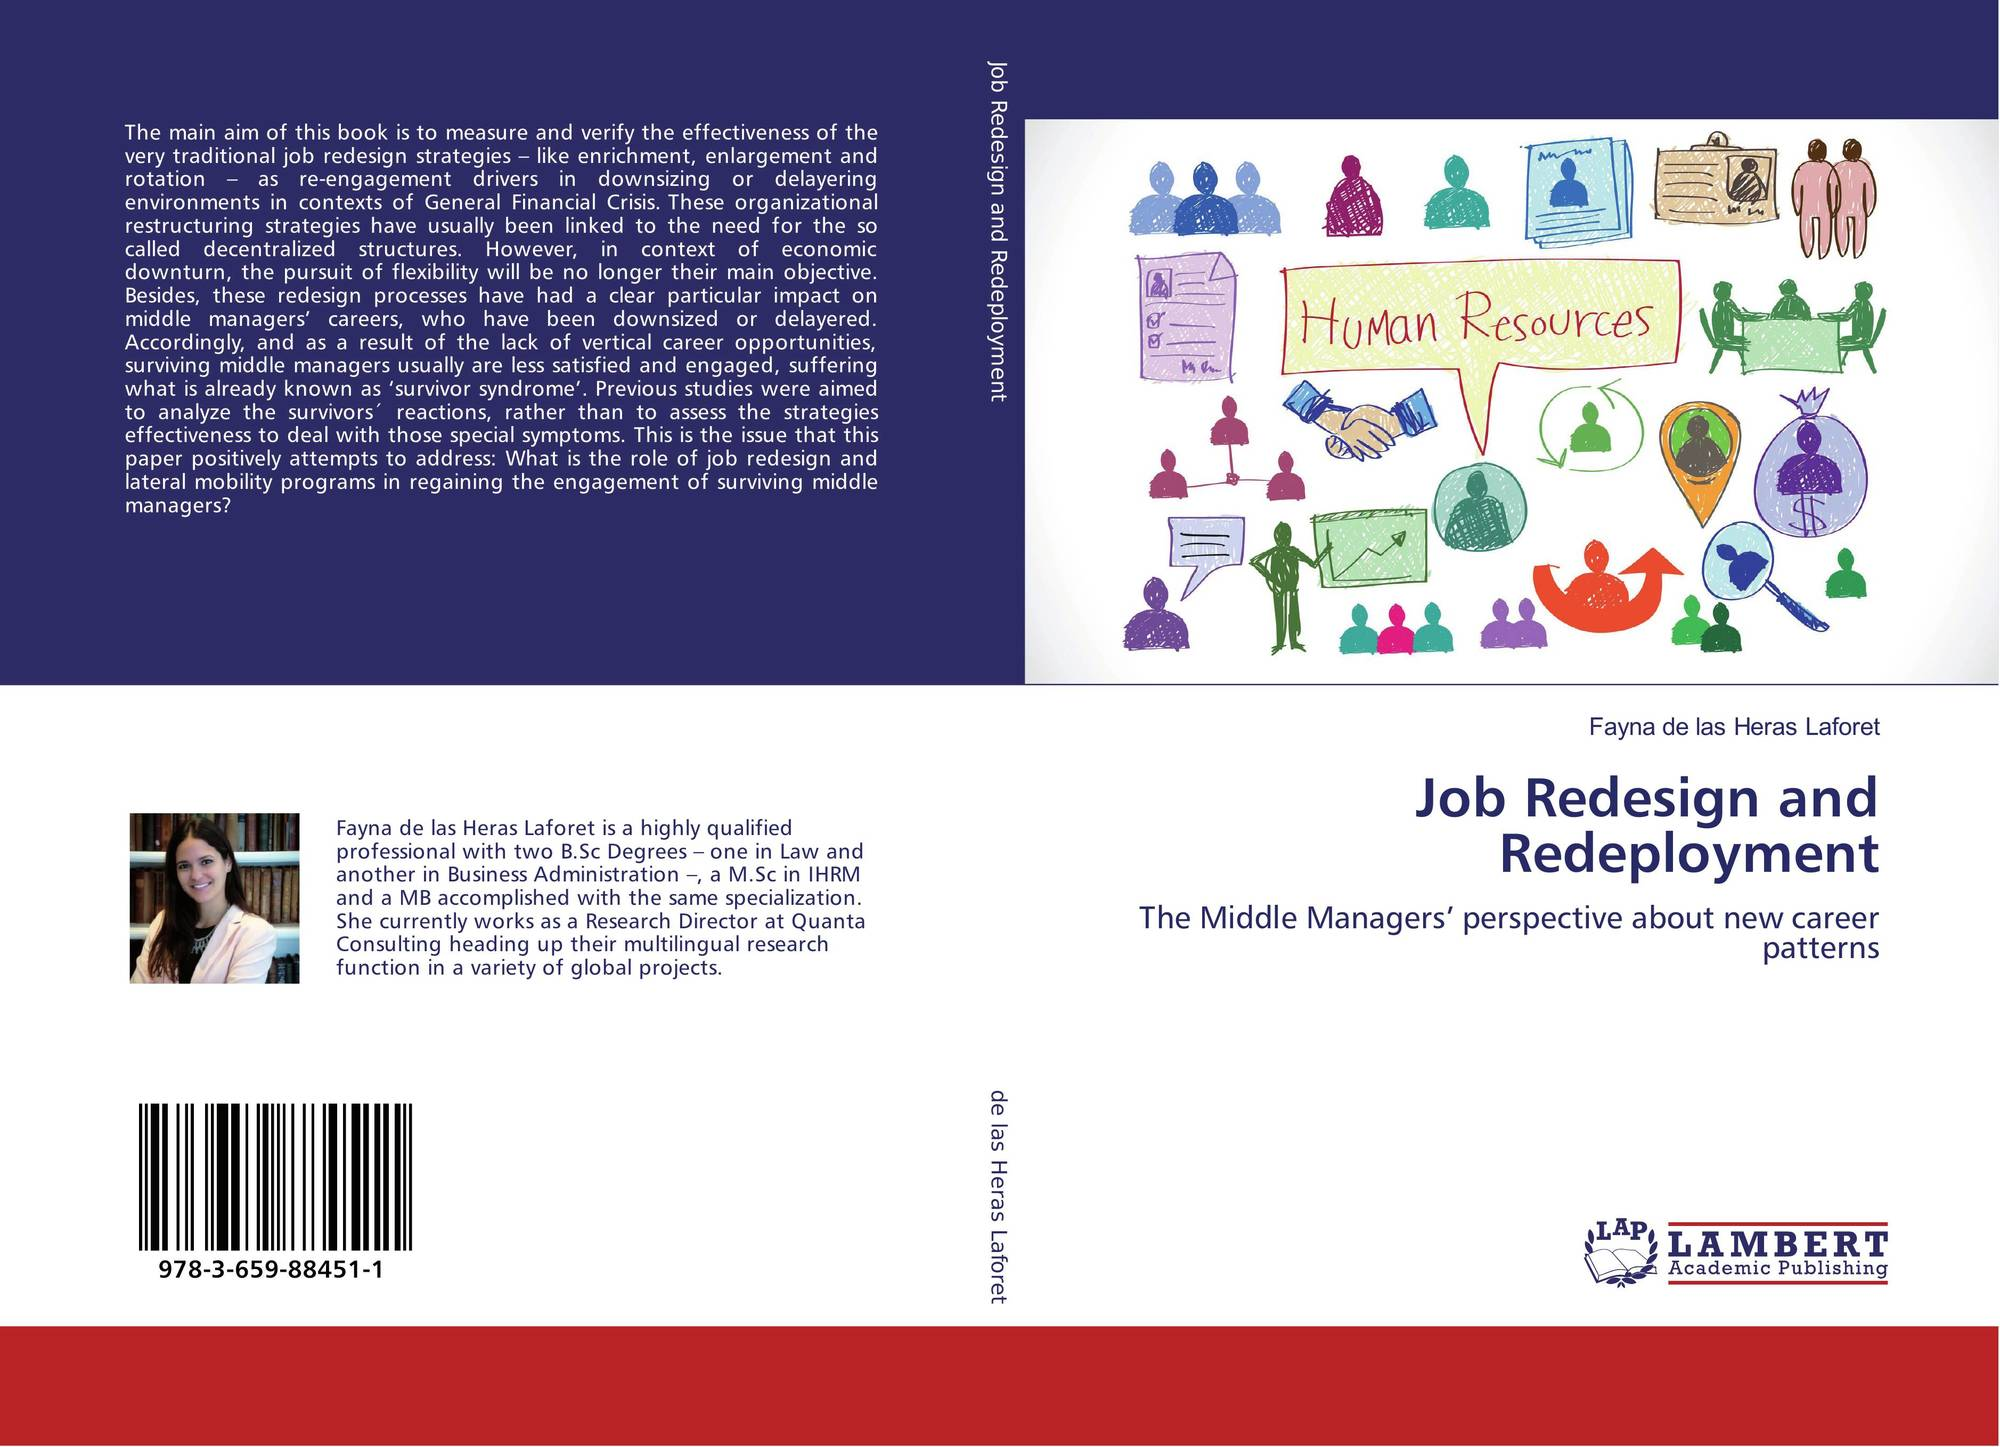 job redesign Definition of job design:  aimed at reducing or overcoming job dissatisfaction and employee alienation arising from repetitive and mechanistic tasks.